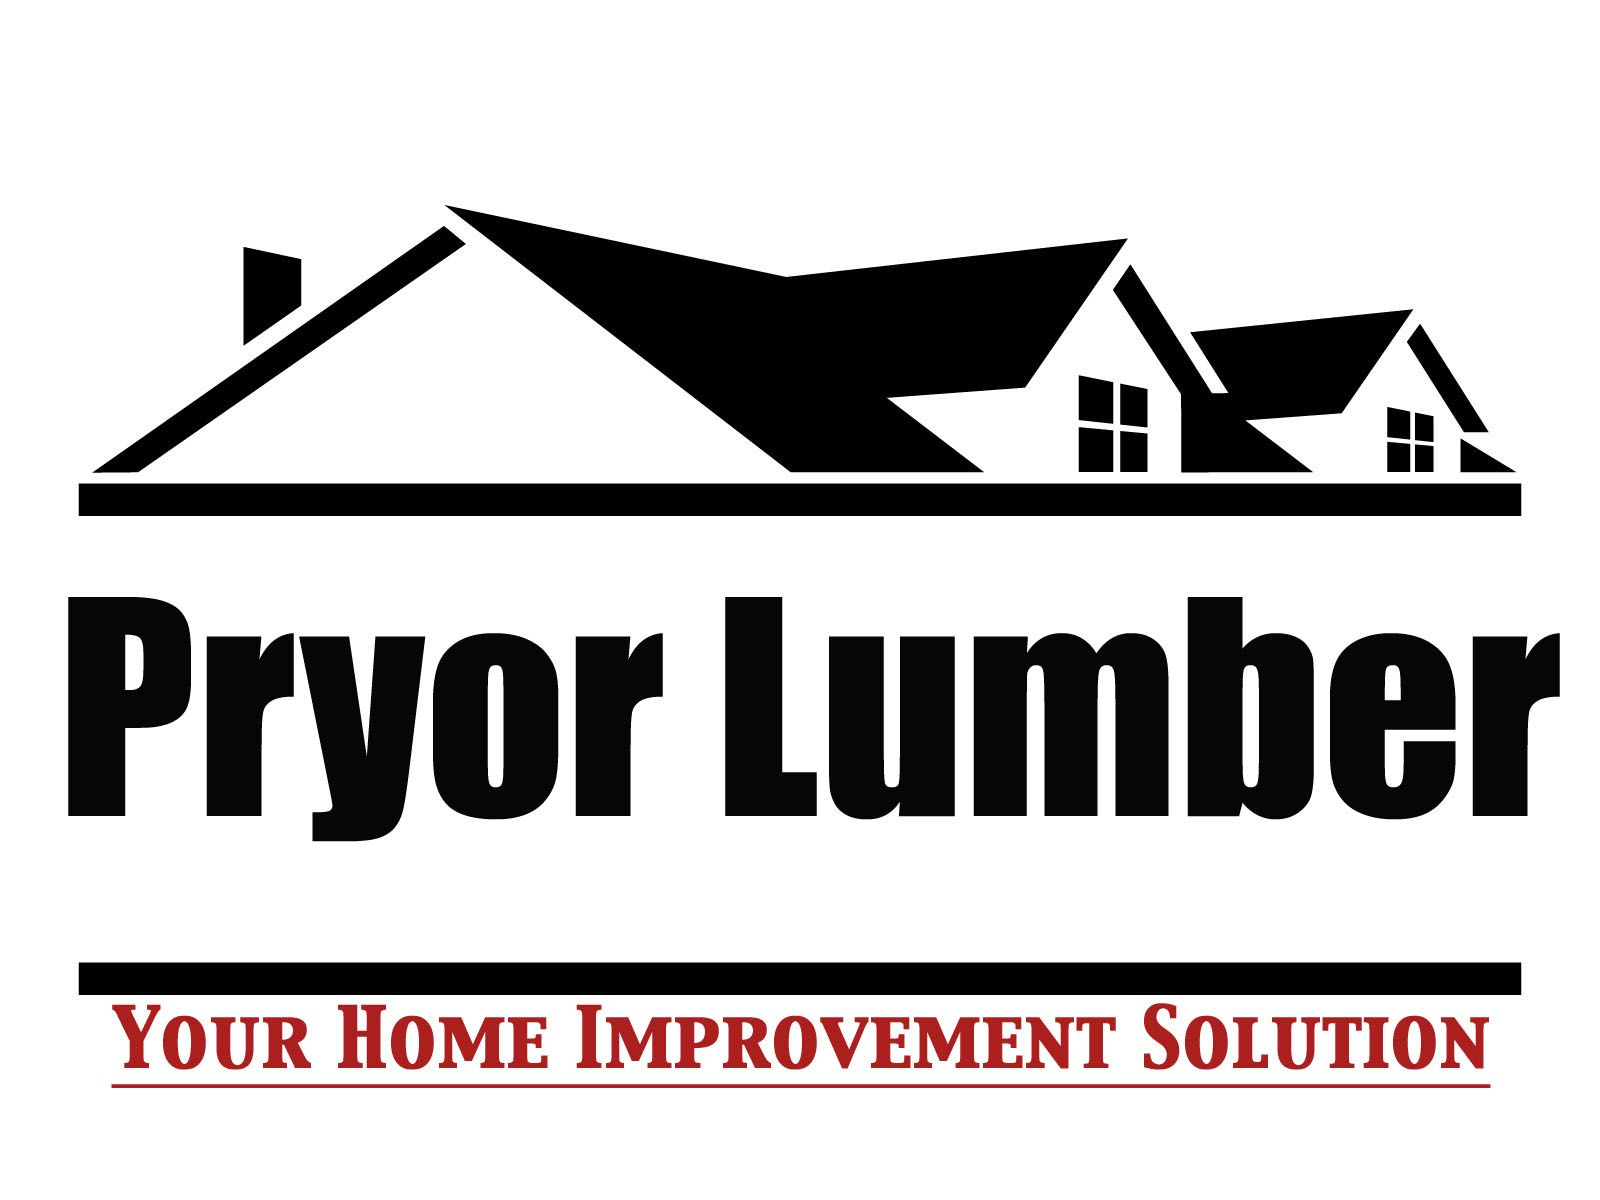 Home Improvement Companies Logos Info On Affording House Repairs